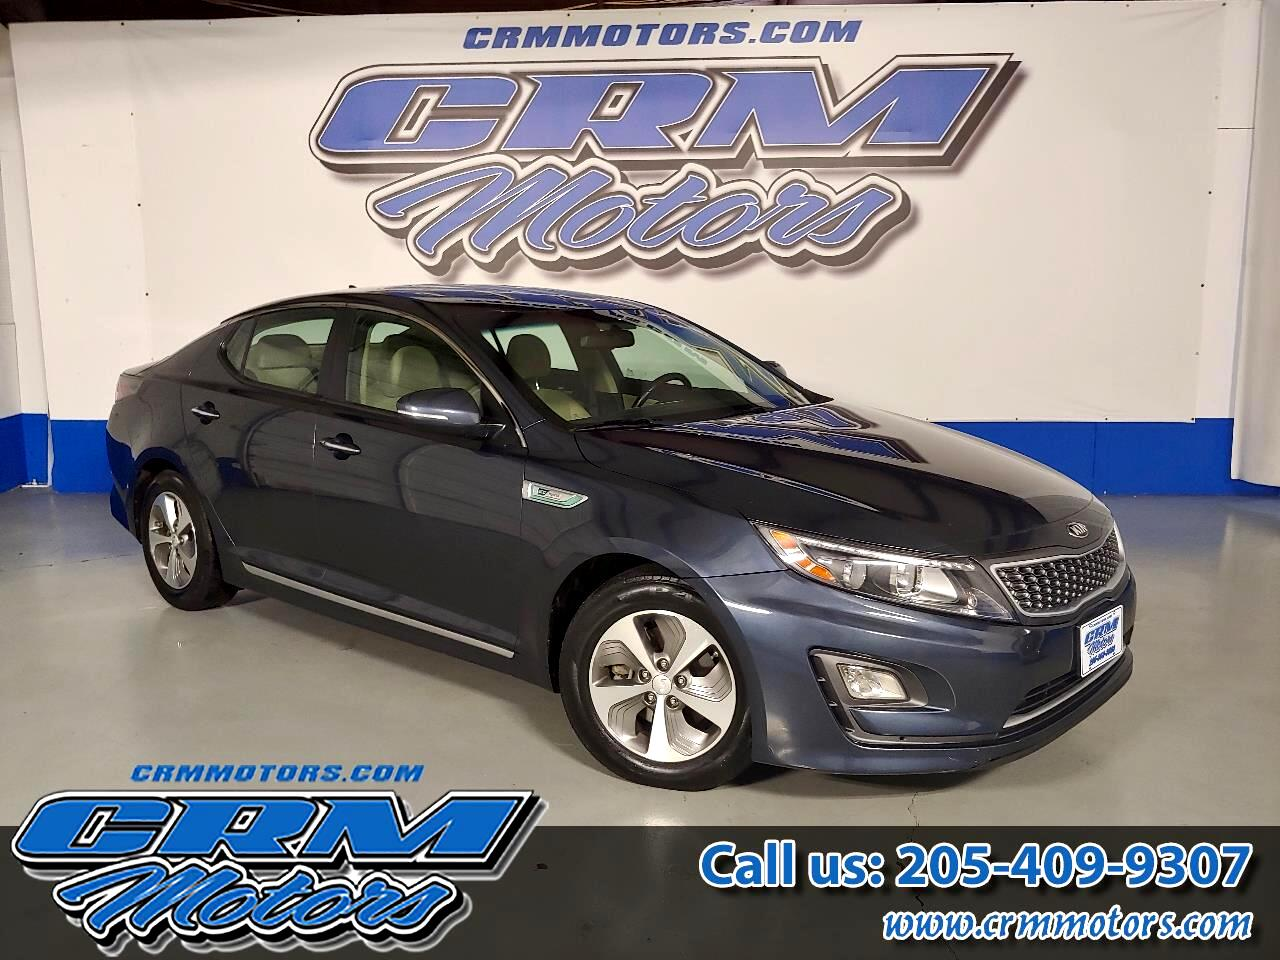 2015 Kia Optima Hybrid 4 DOOR SEDAN - 40 MILES PER GALLON!